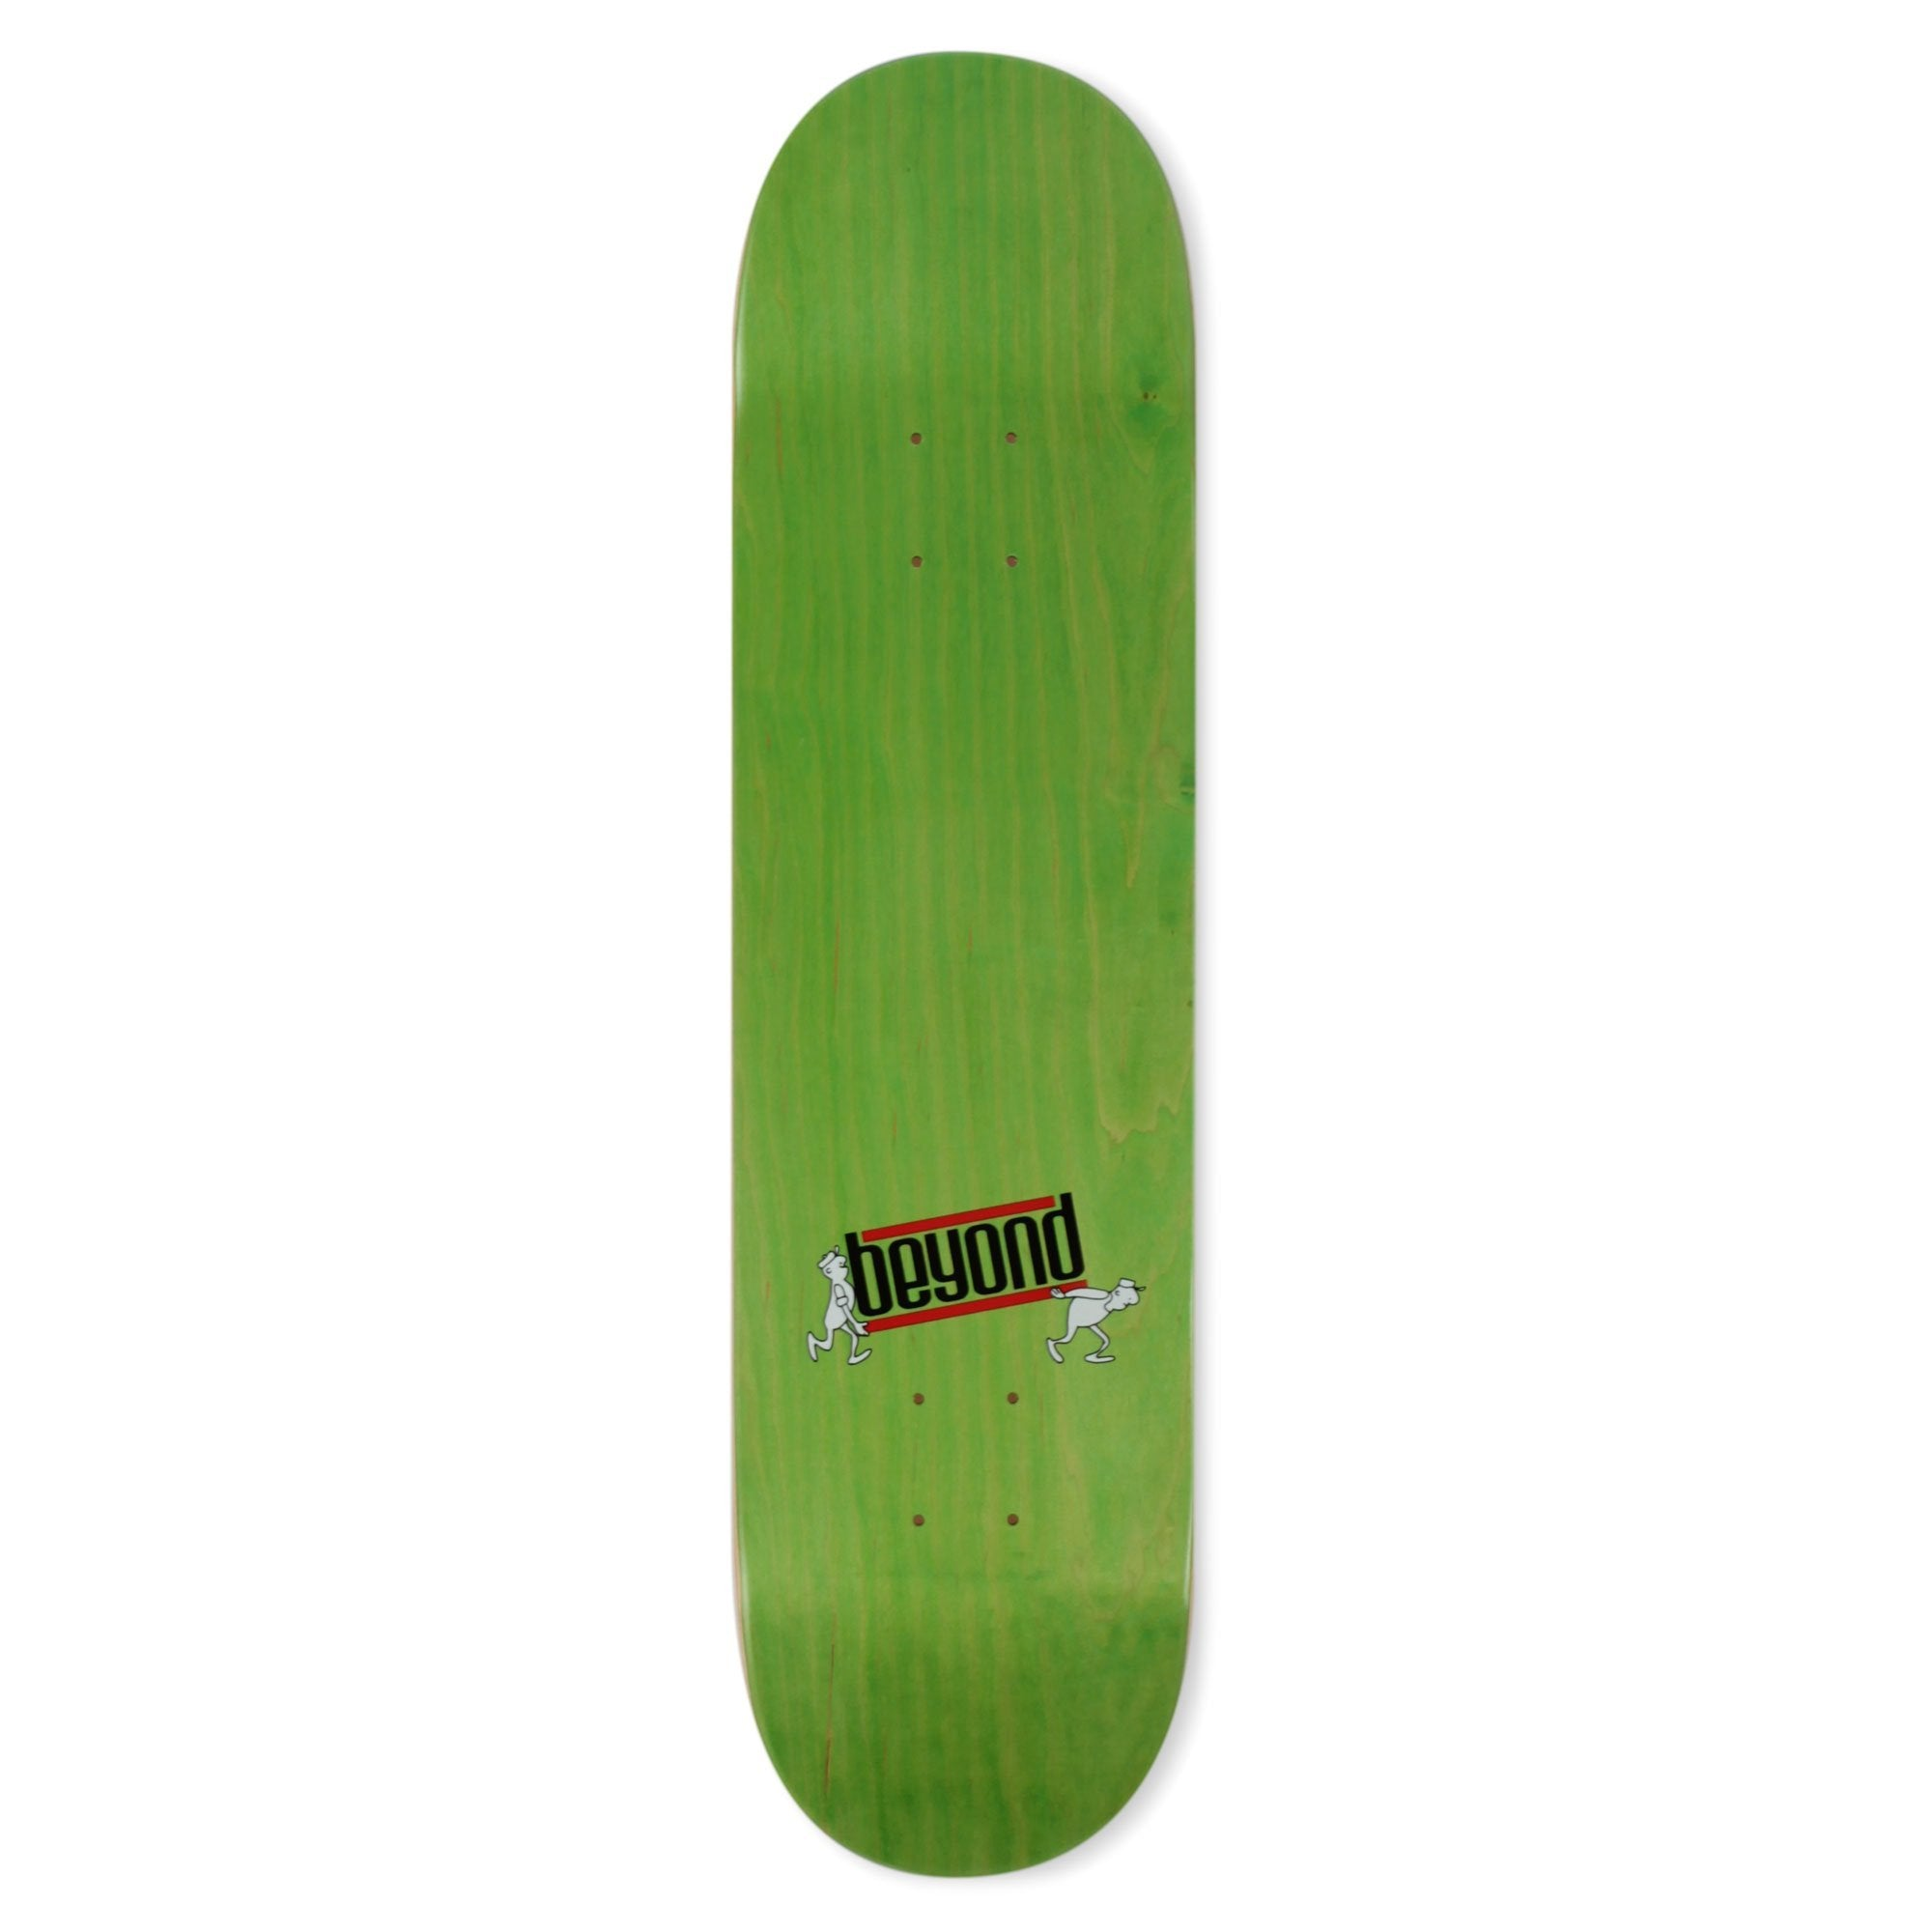 Beyond Moving Men Deck Product Photo #3